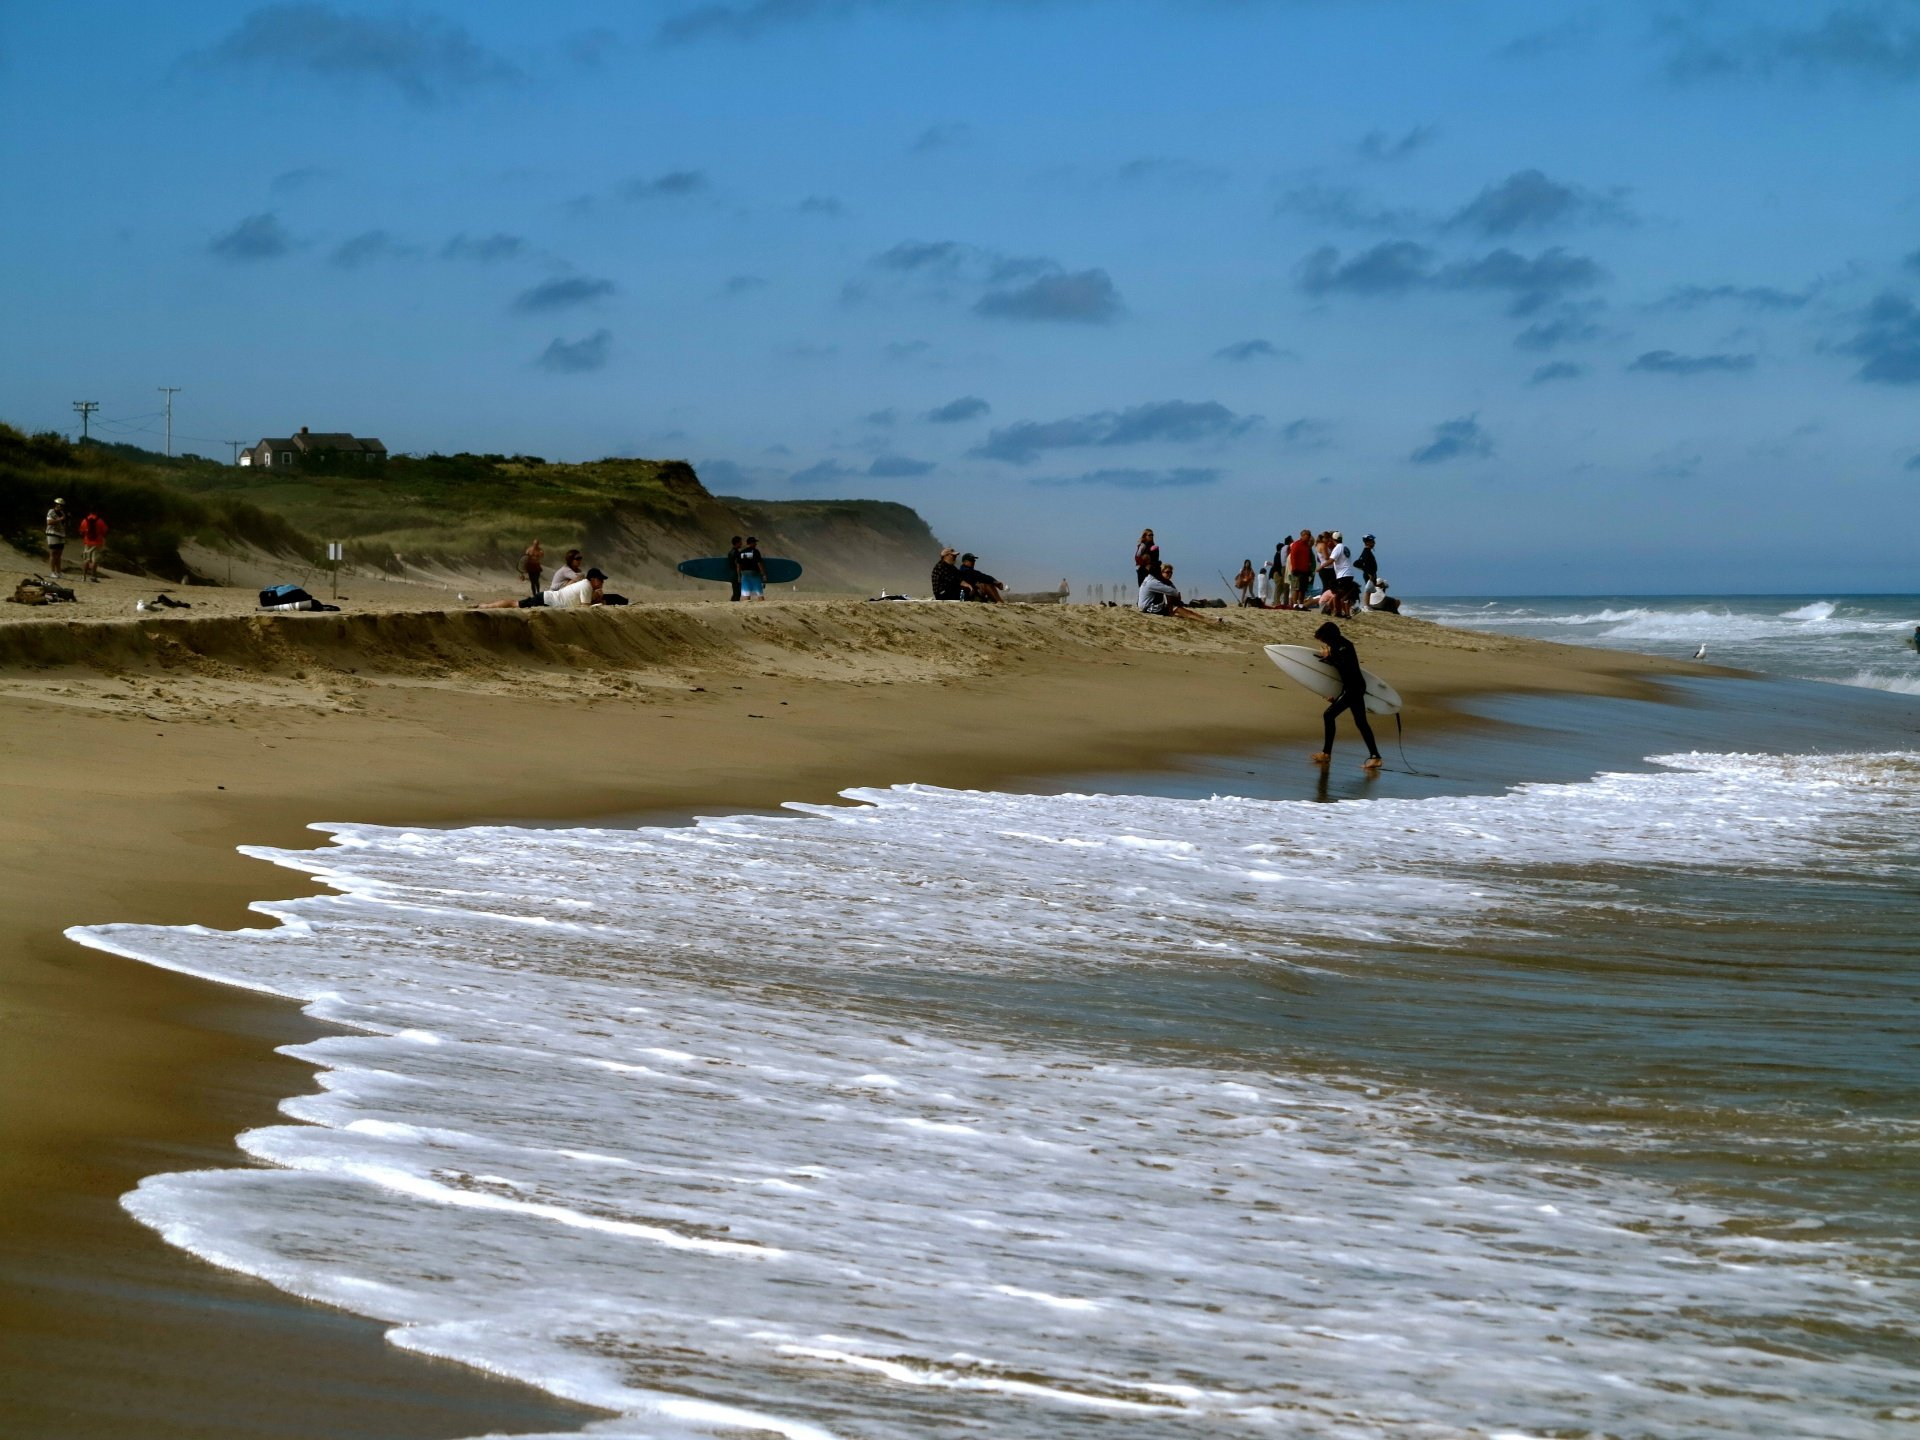 armstrong's photo of Cape Cod